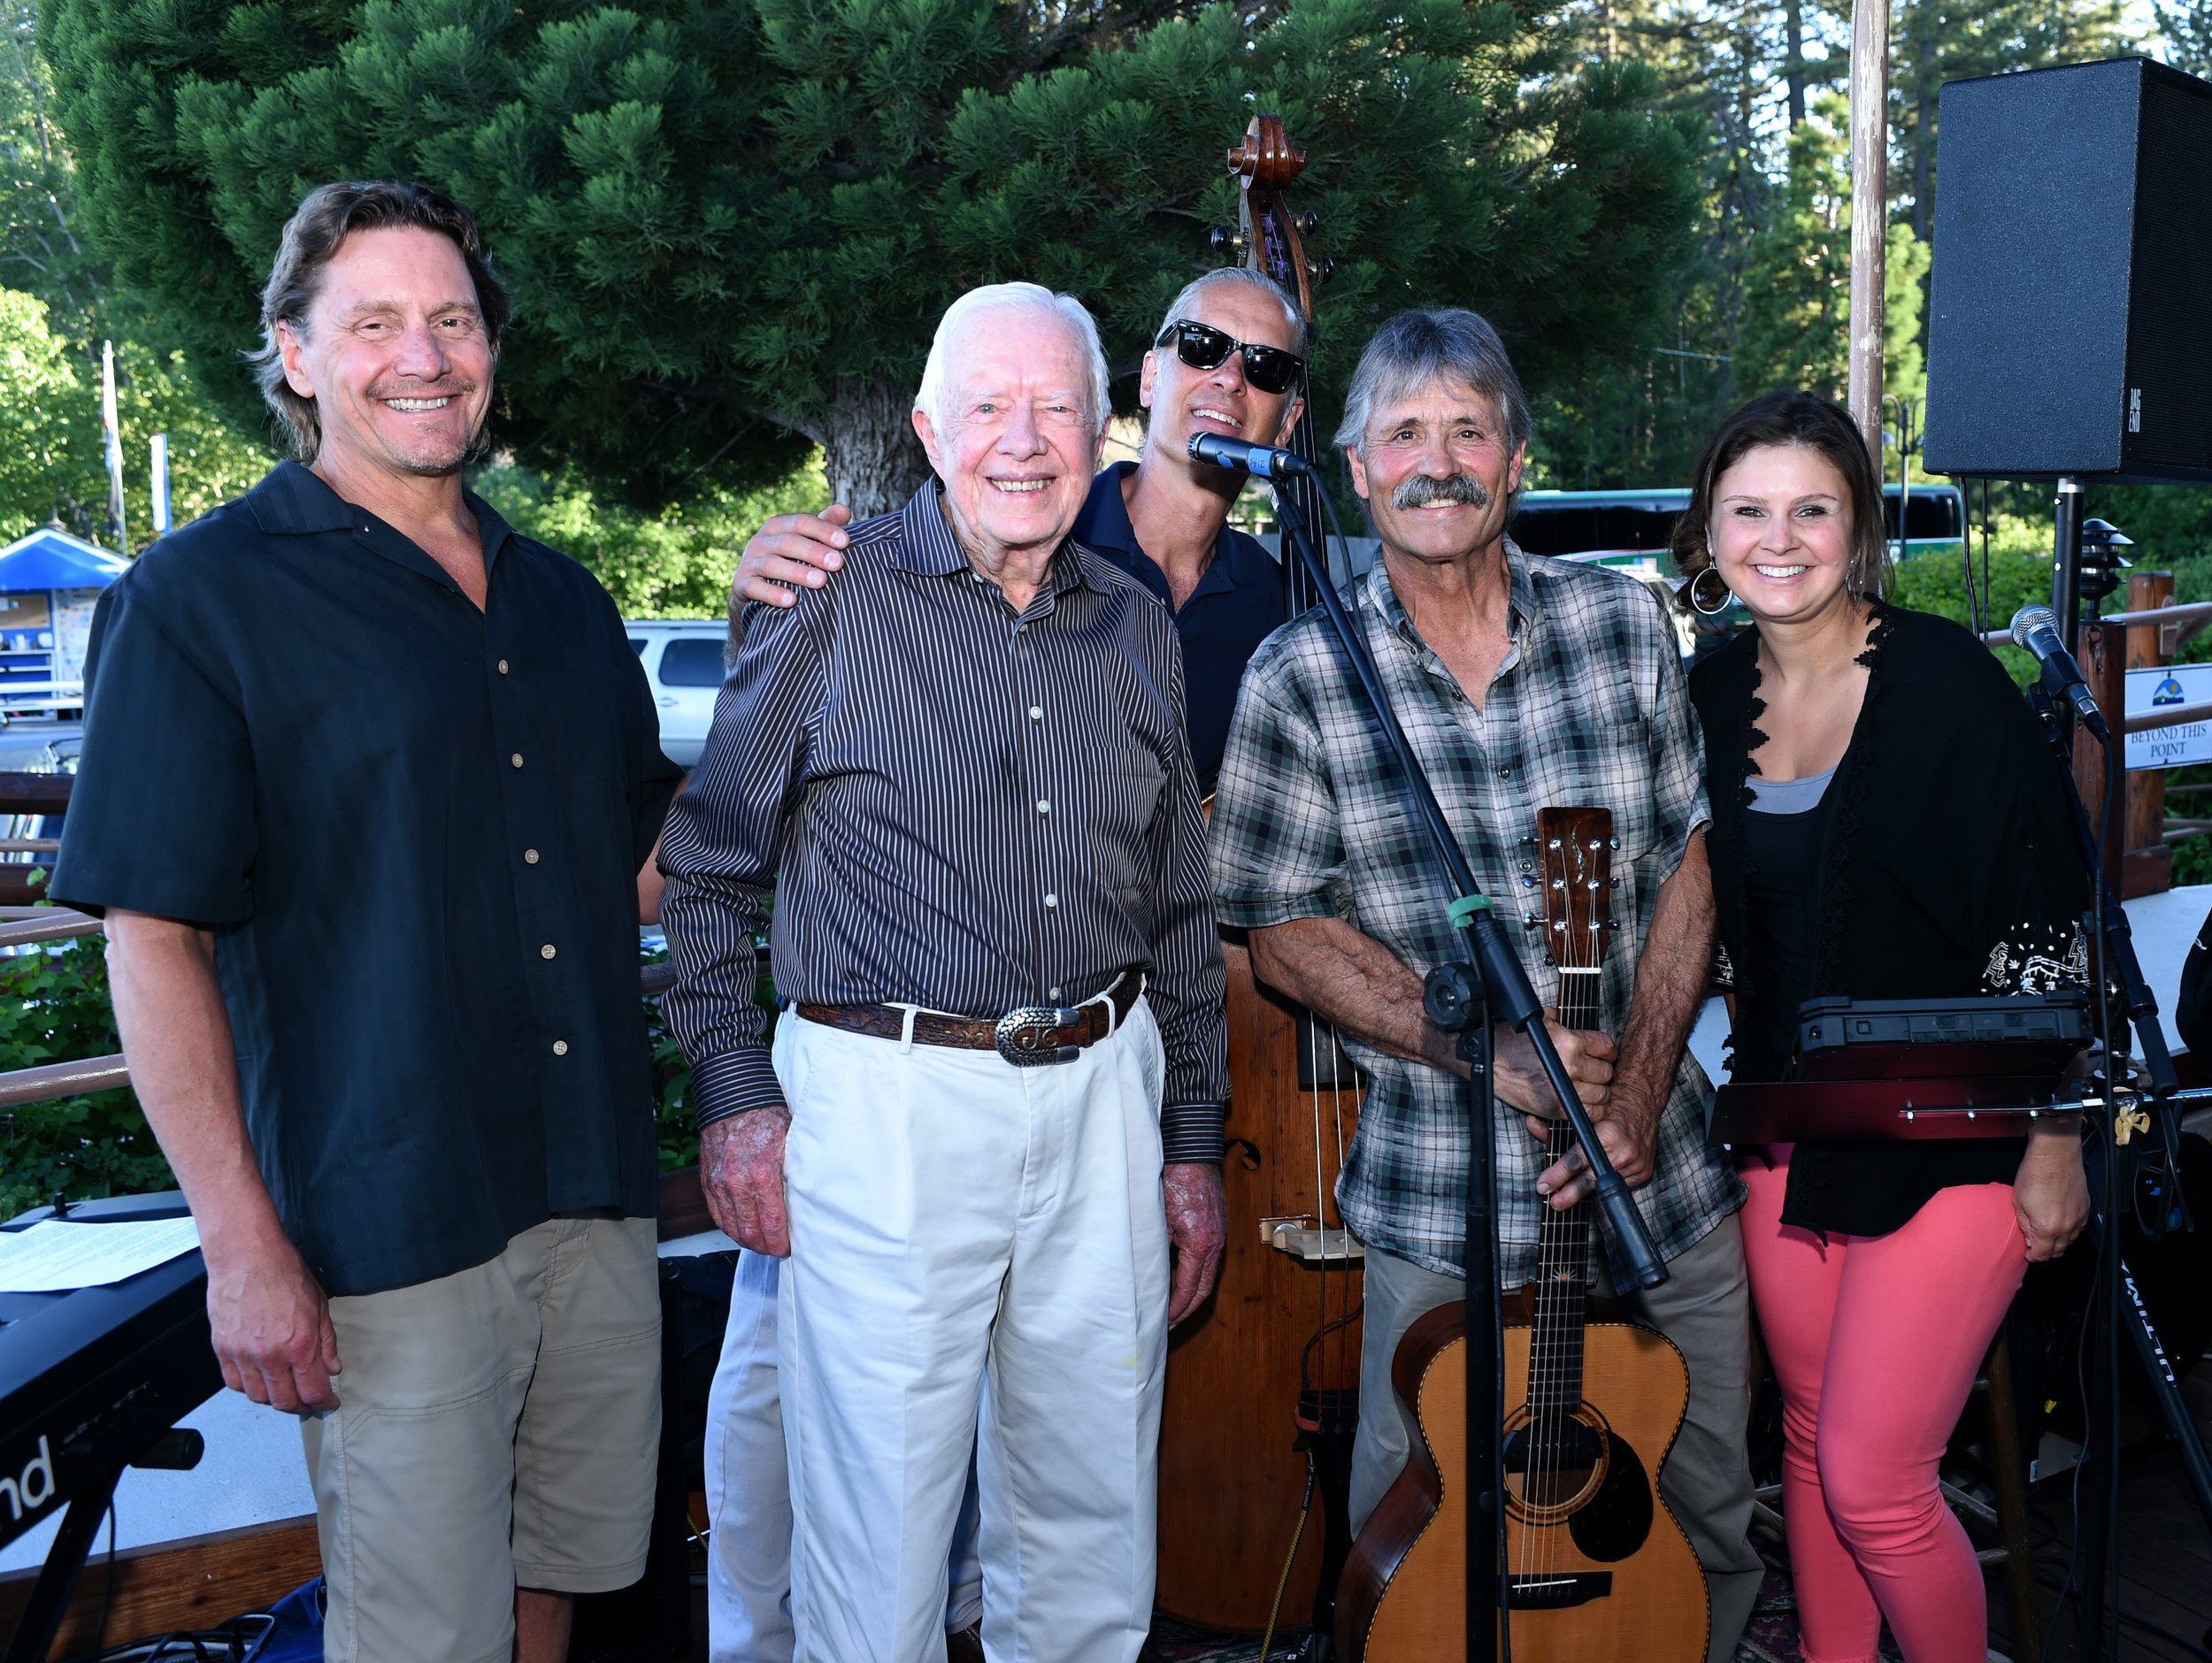 - It was an honor to play for Jimmy Carter at a Habitat for Humanity event at Lake Tahoe